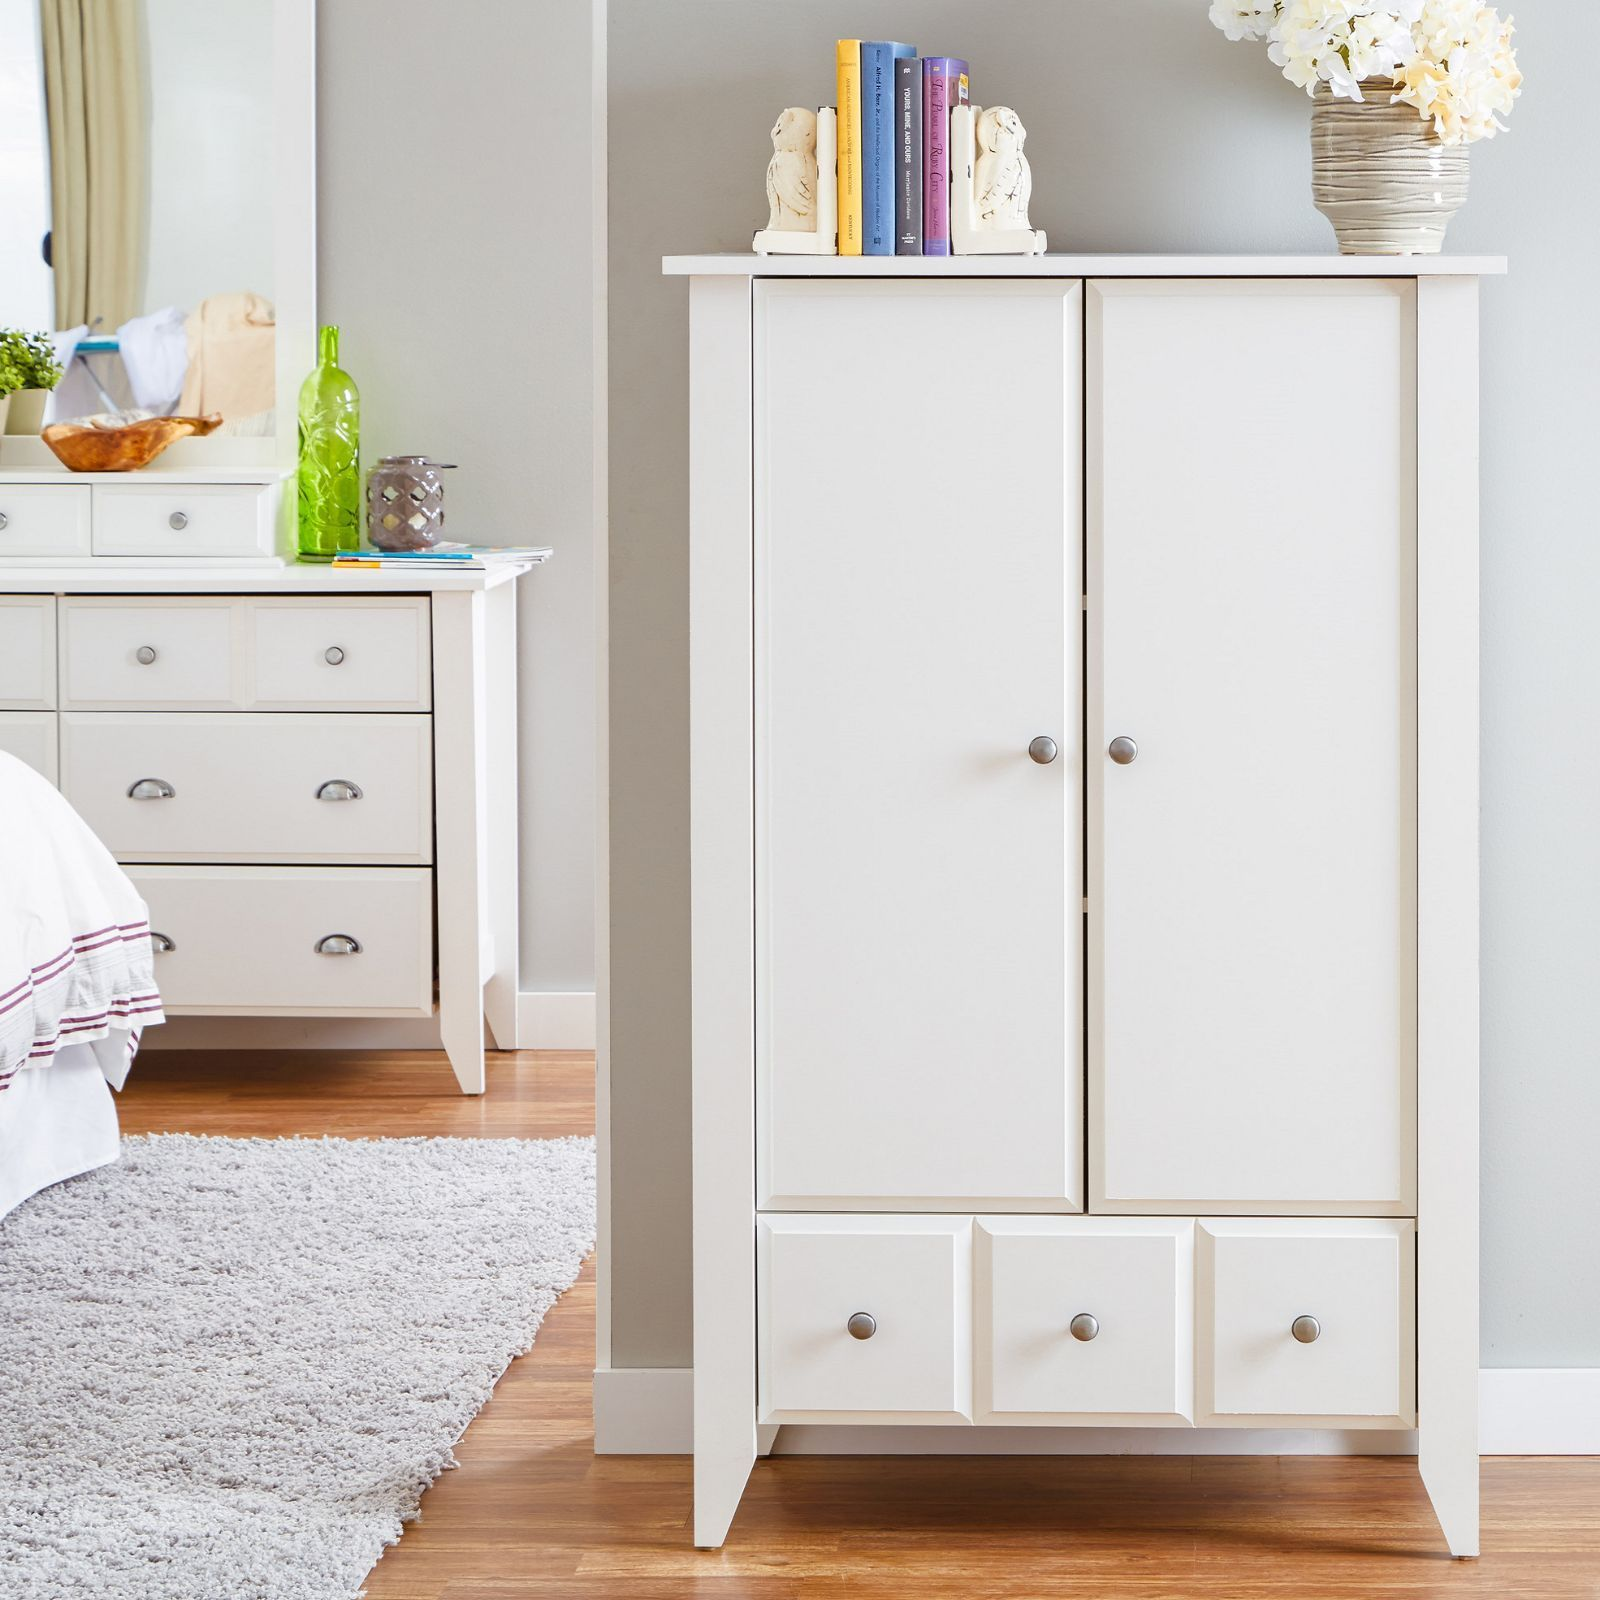 Marvelous photograph of Armoire White Wooden Wardrobe Clothes Closet Bedroom Furniture Decor  with #8CAF1C color and 1600x1600 pixels